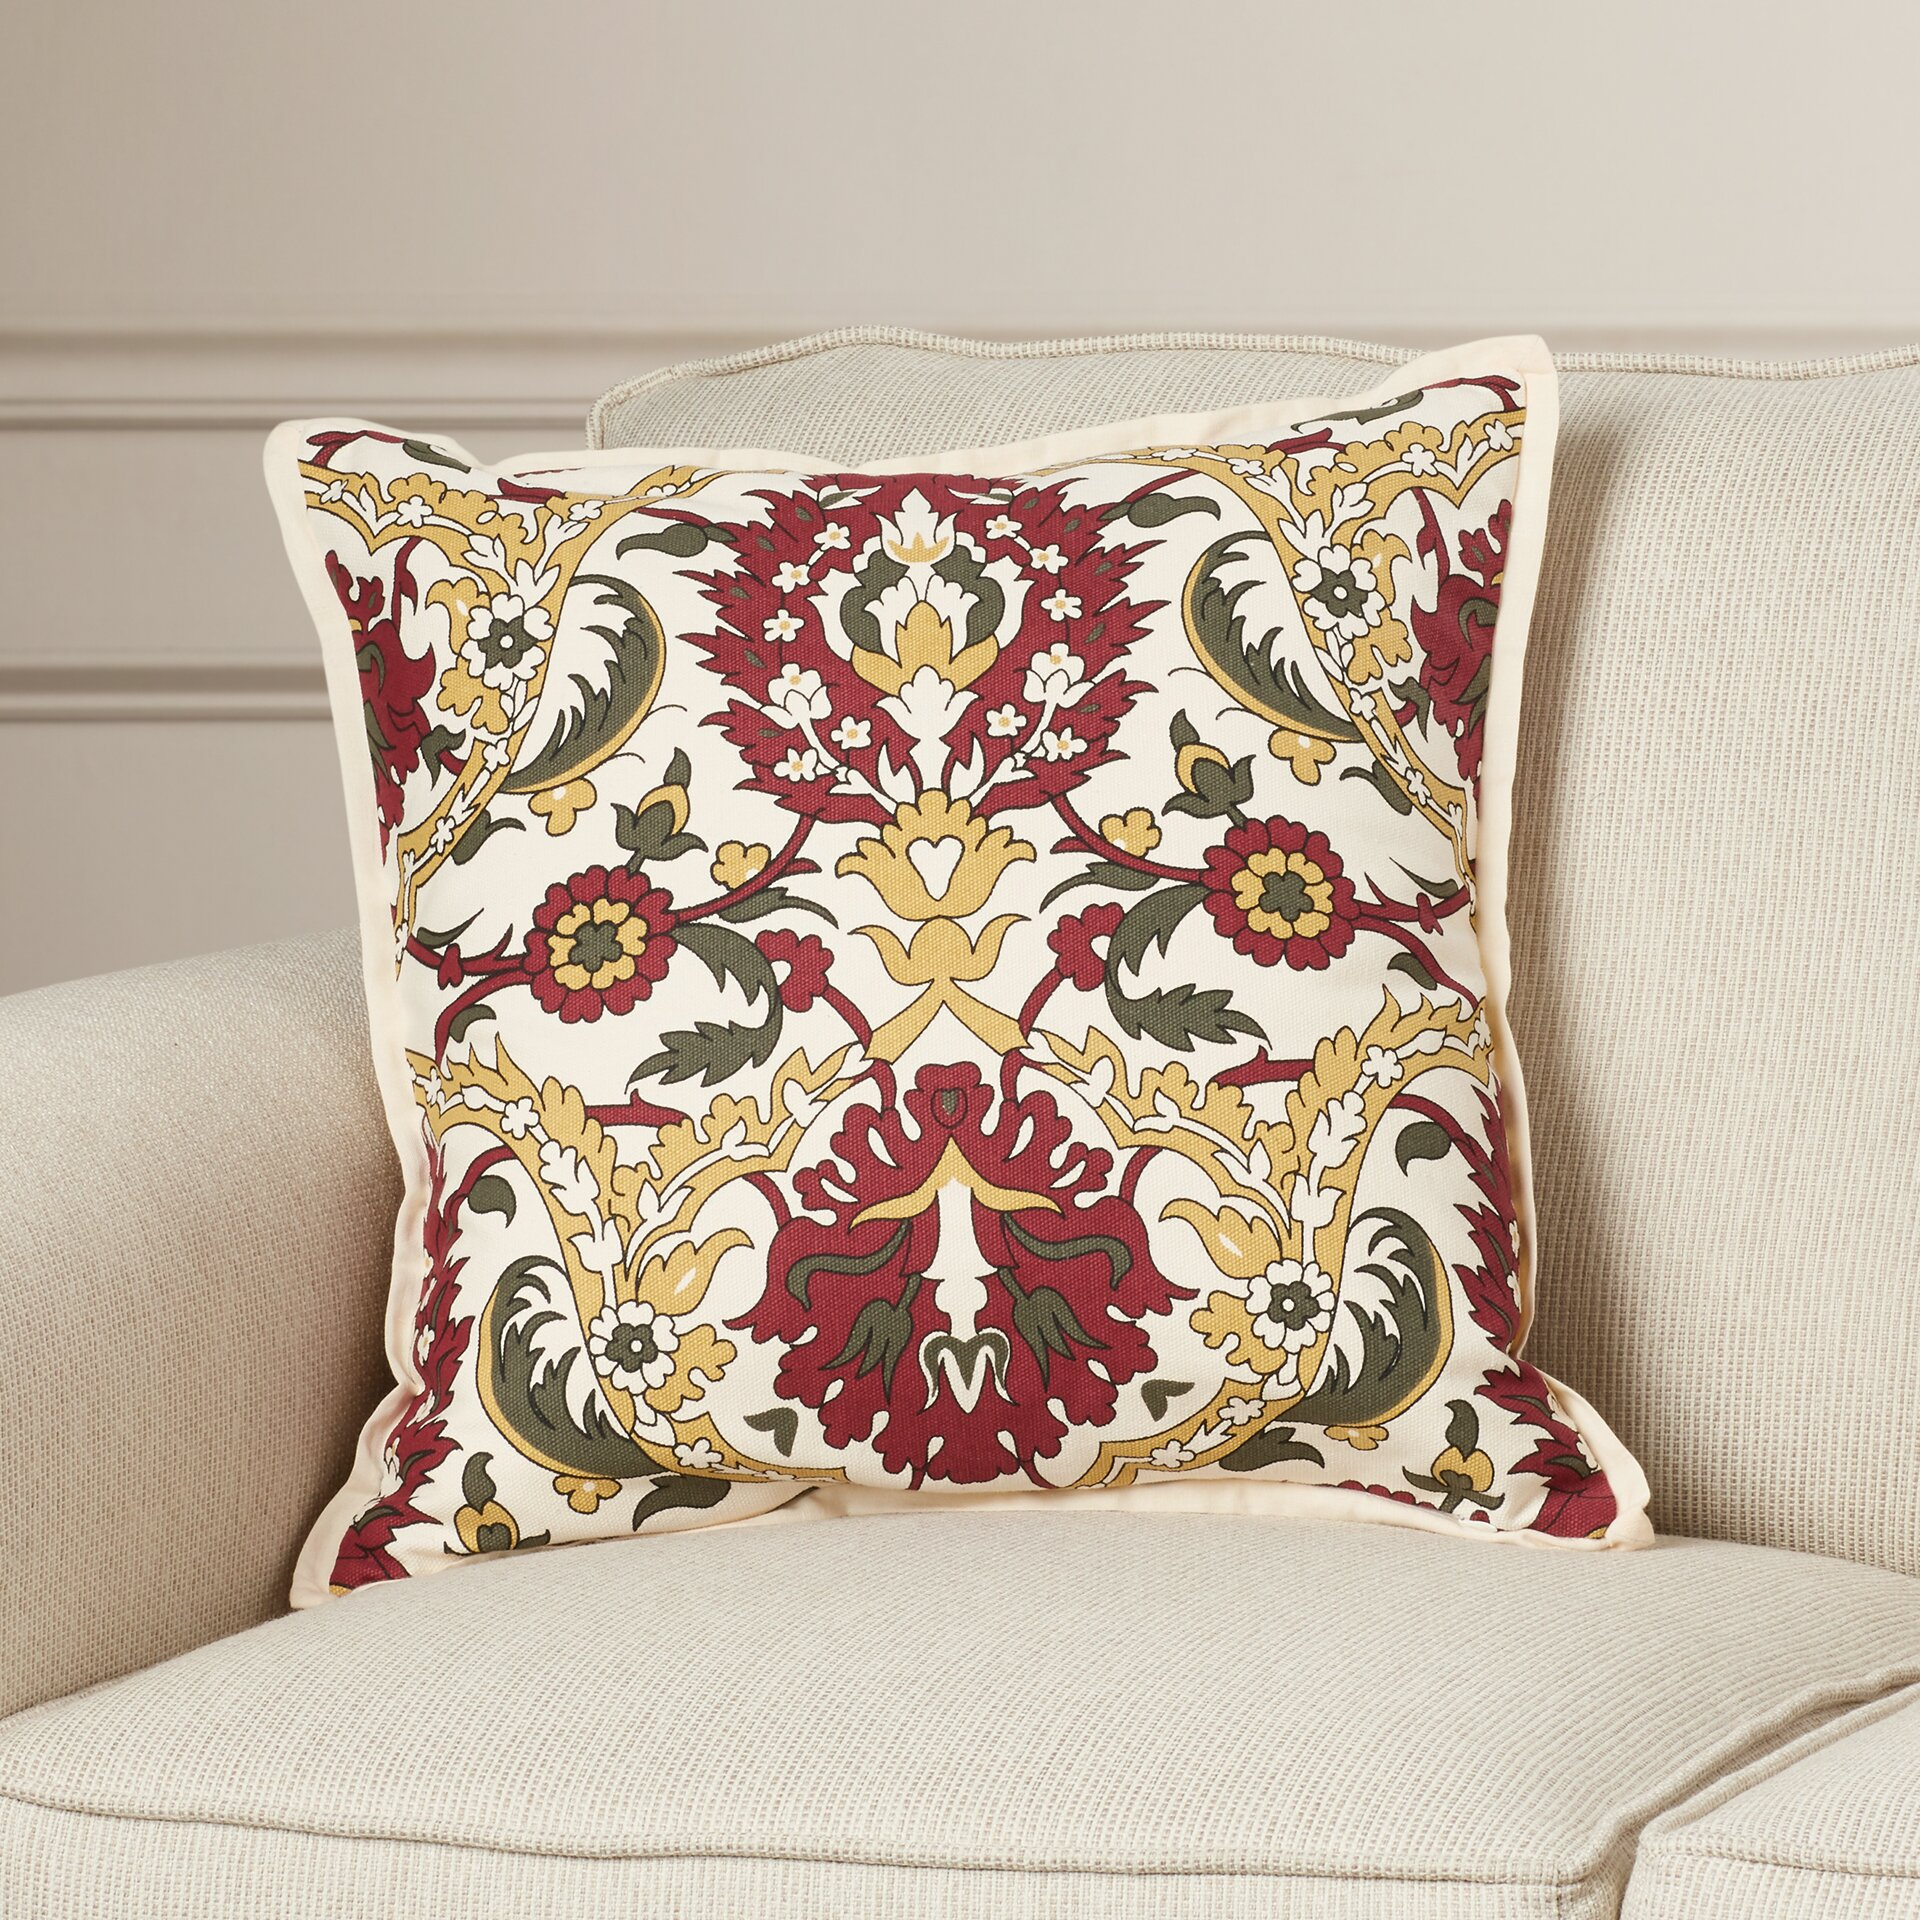 Down Throw Pillows For Couch : Darby Home Co Coeur Down Throw Pillow Wayfair